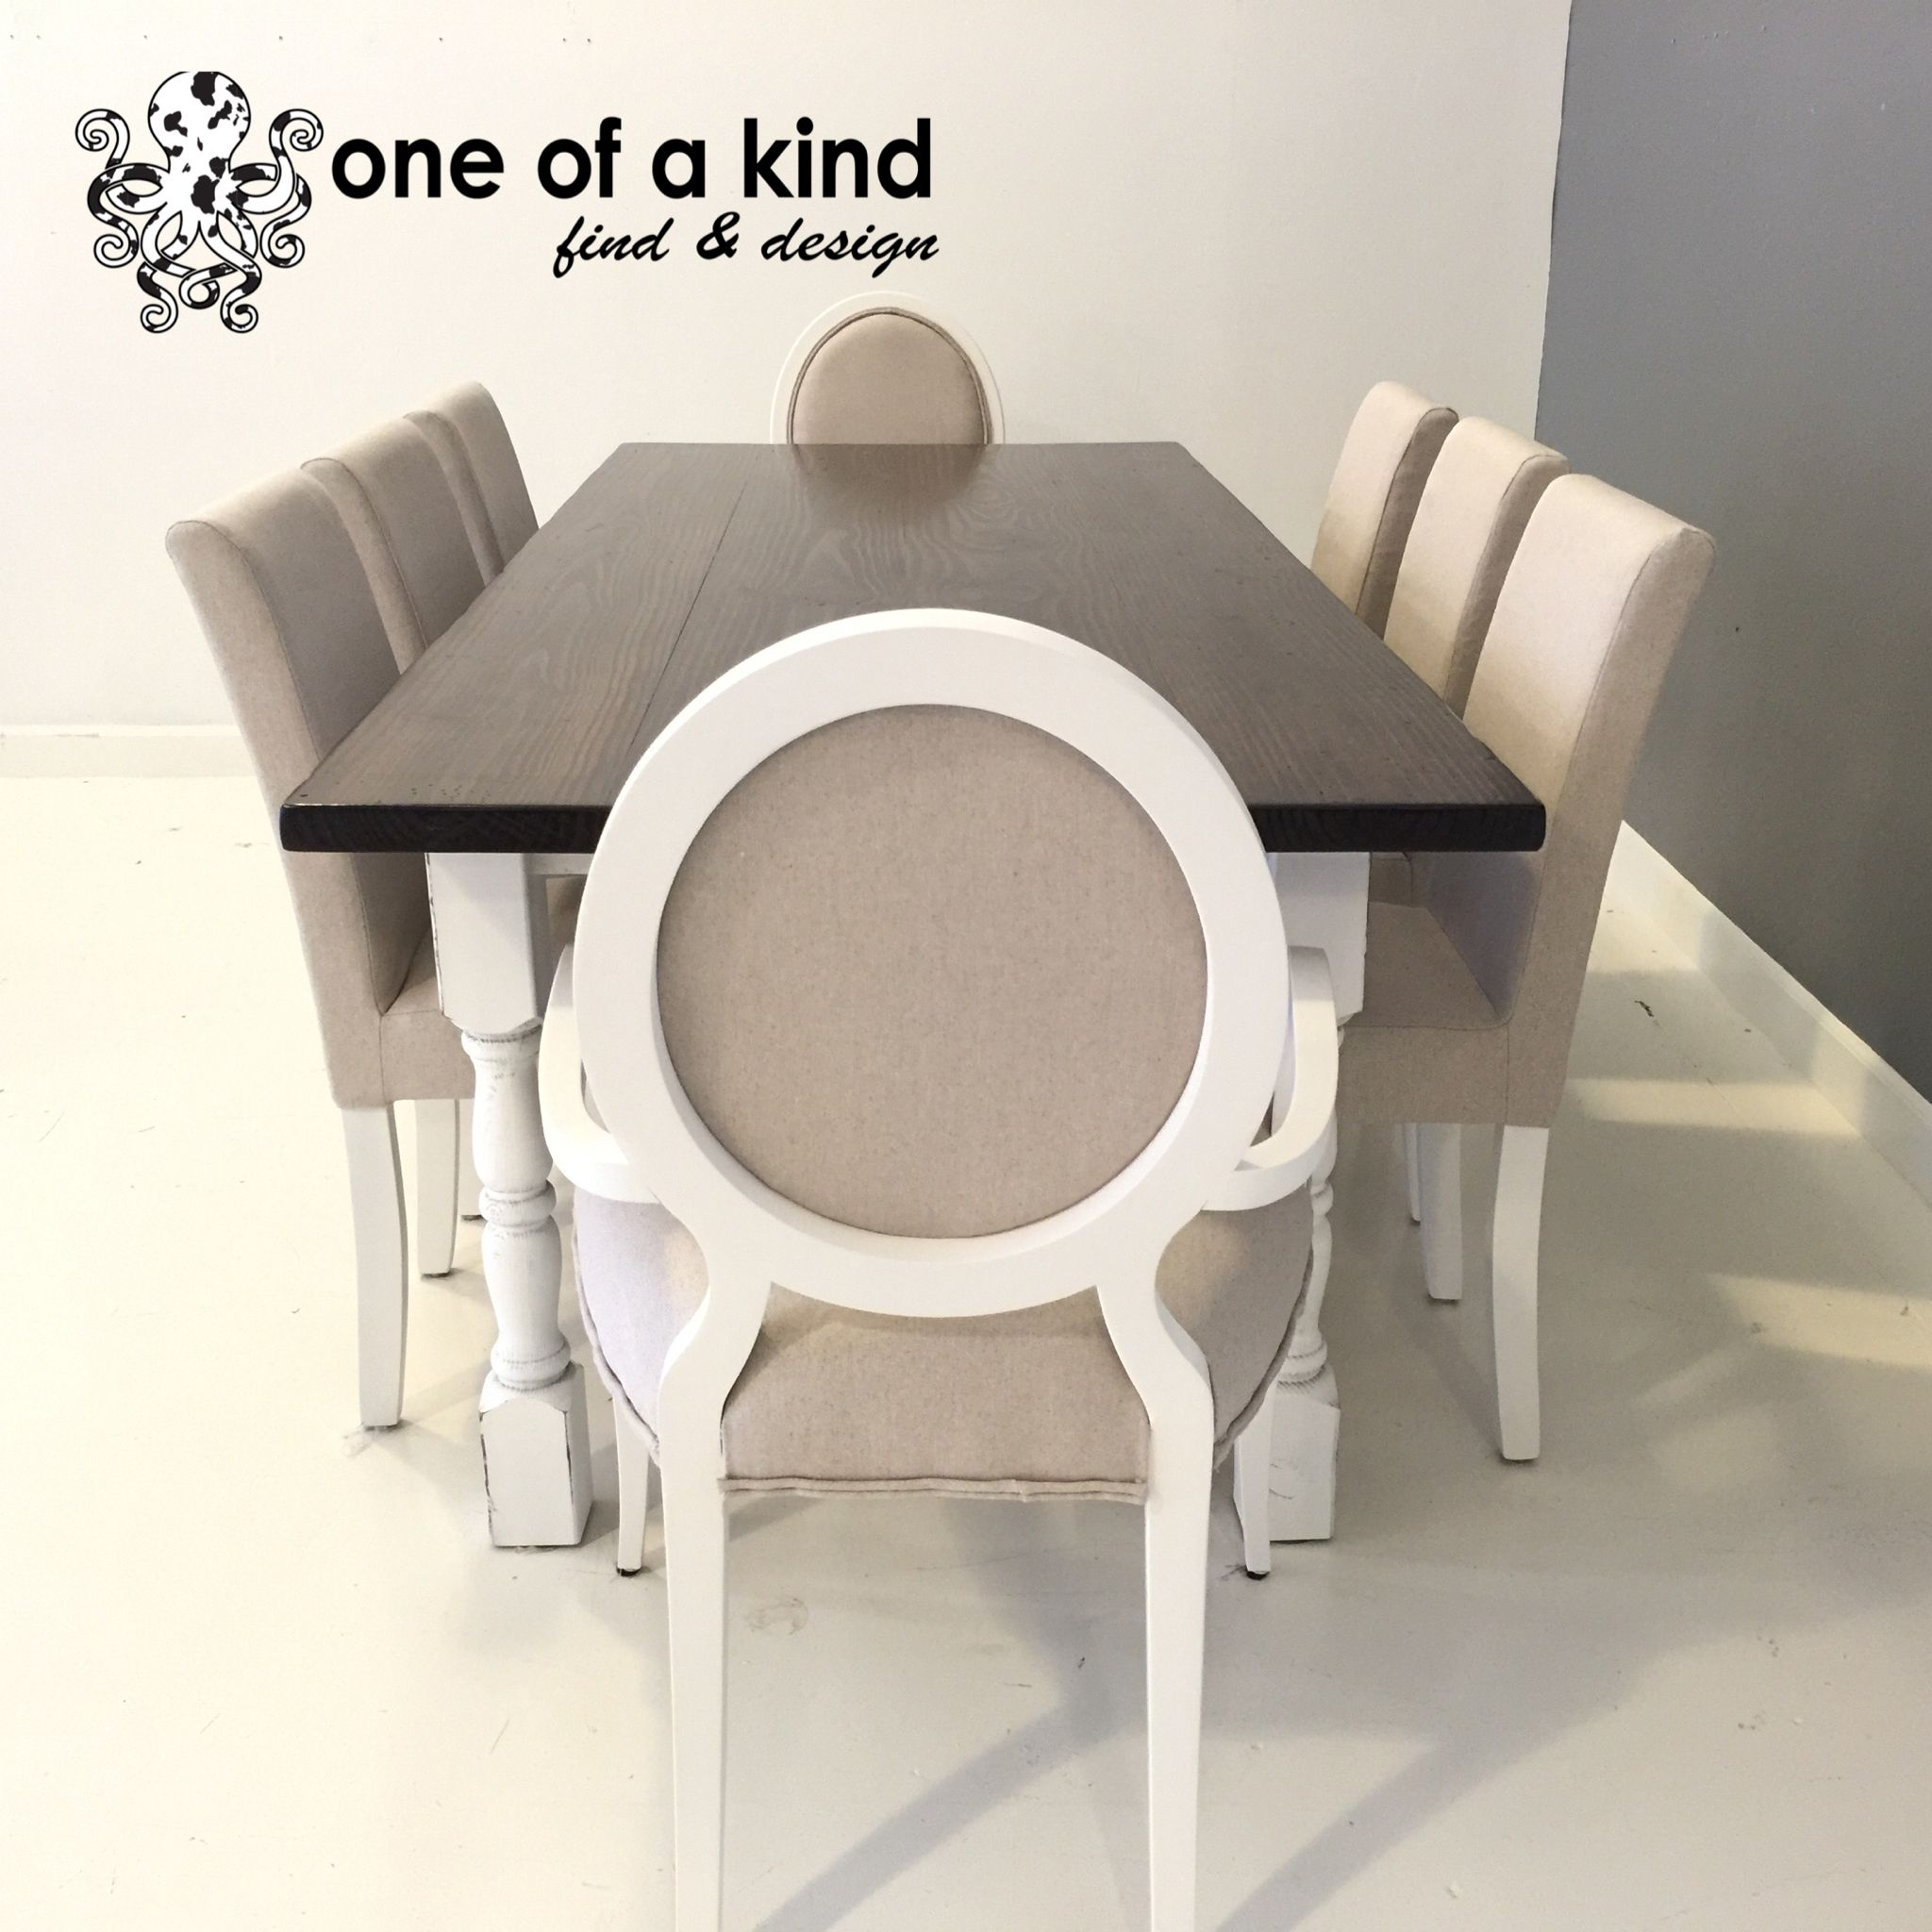 We Love These Beautiful Table Sets With Neutral Colors It Provides